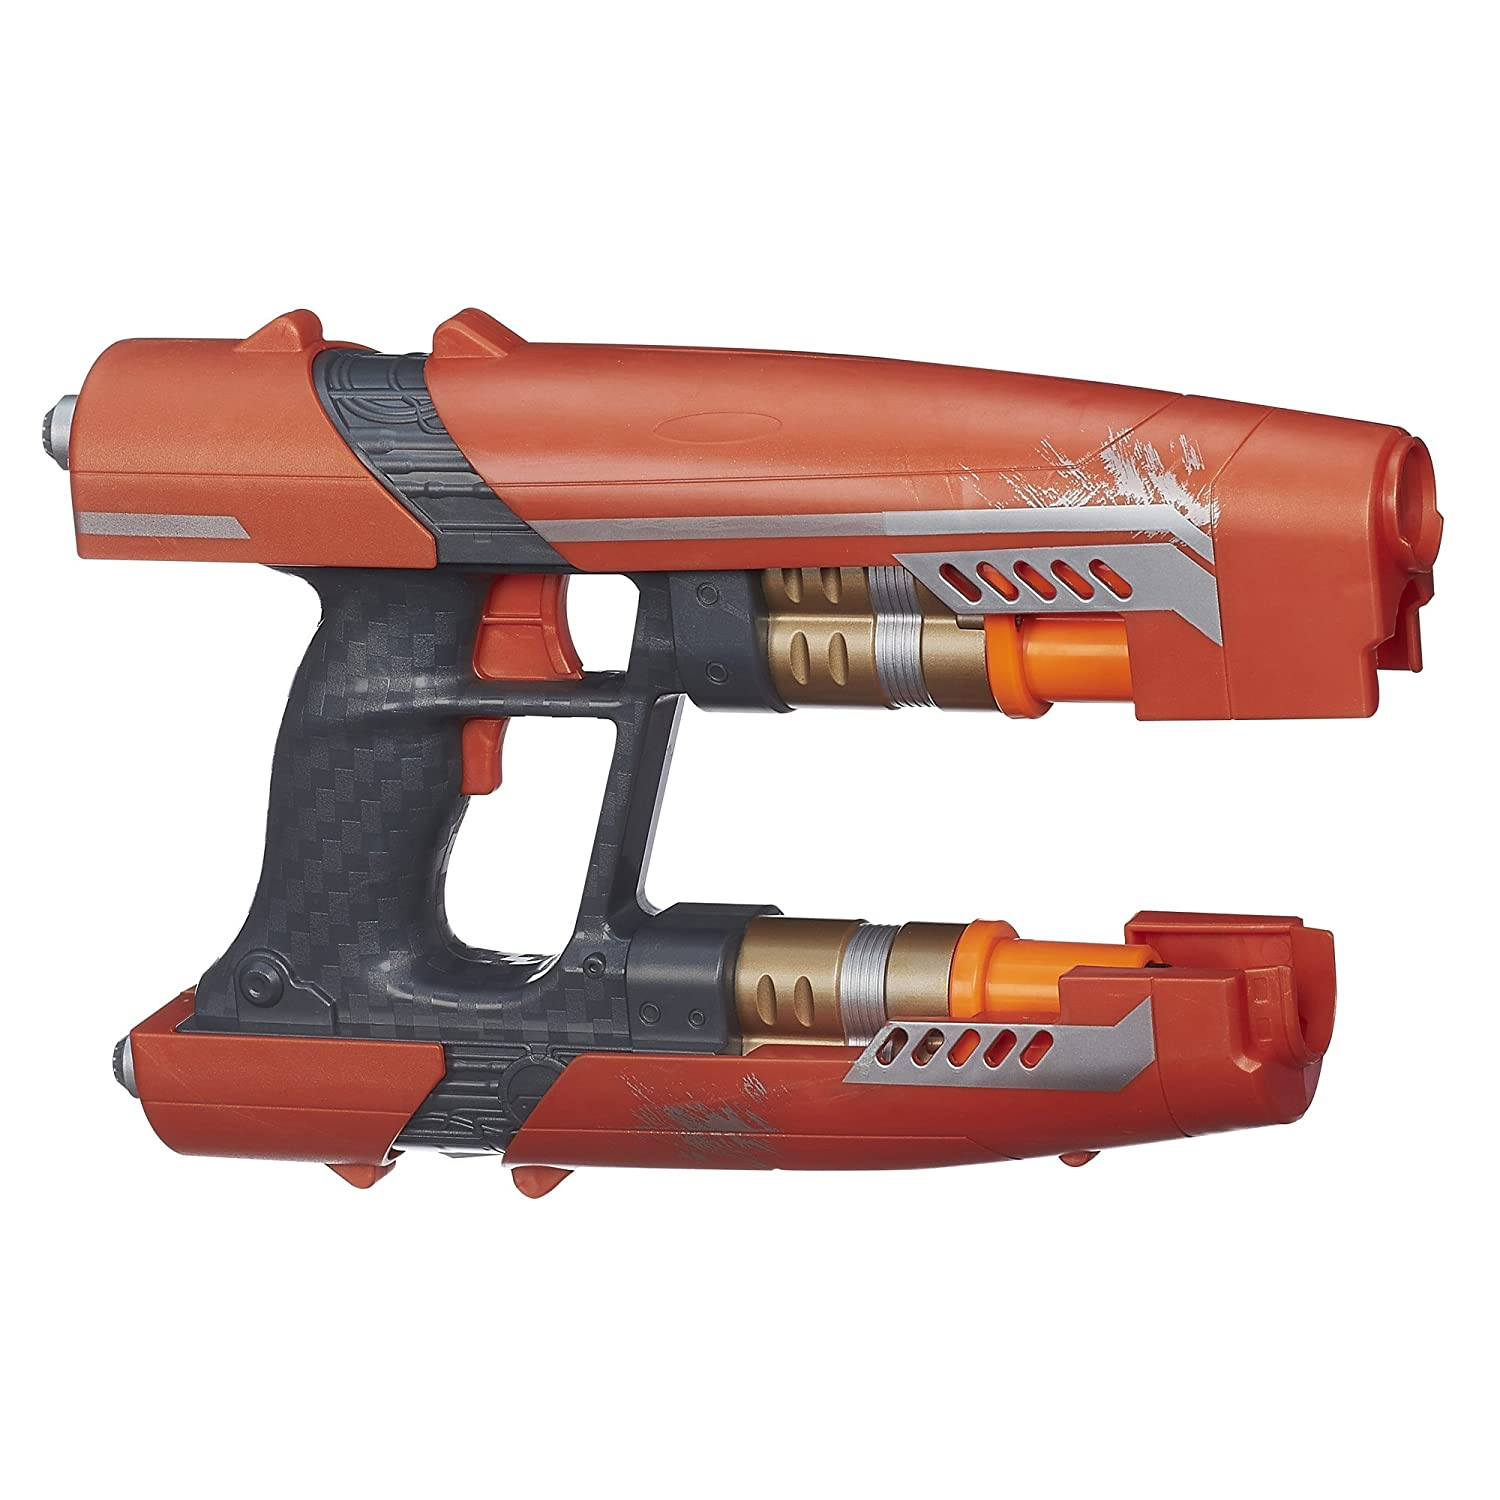 Amazon Marvel Guardians of The Galaxy Star Lord Quad Blaster Toys & Games